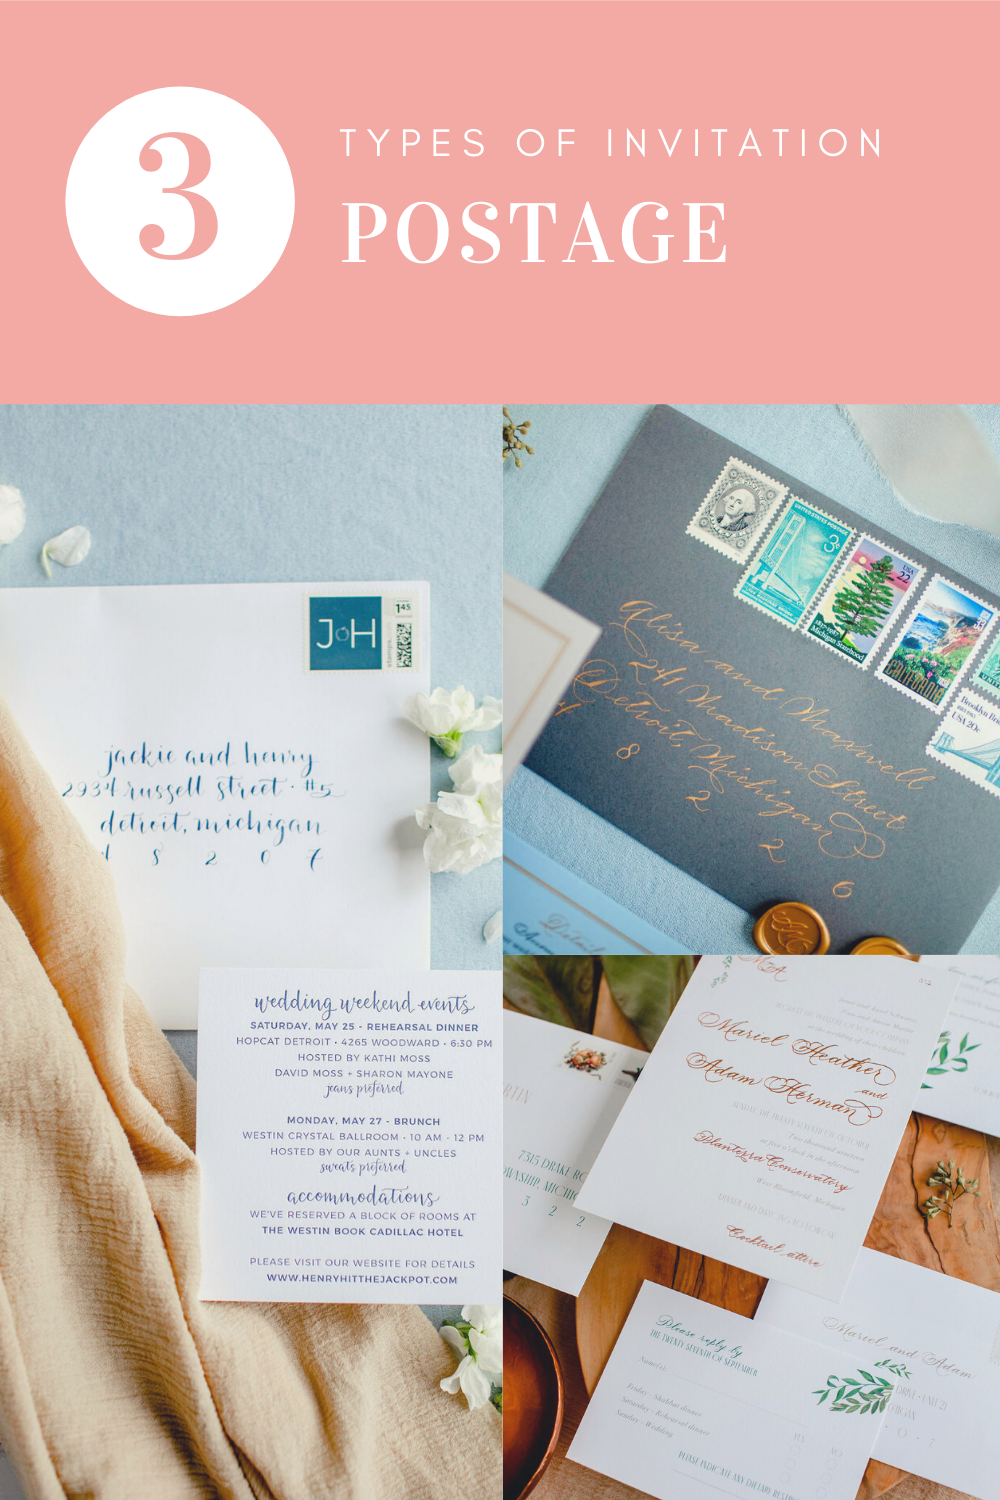 3 types of wedding invitations postage - Leah E. Moss Designs